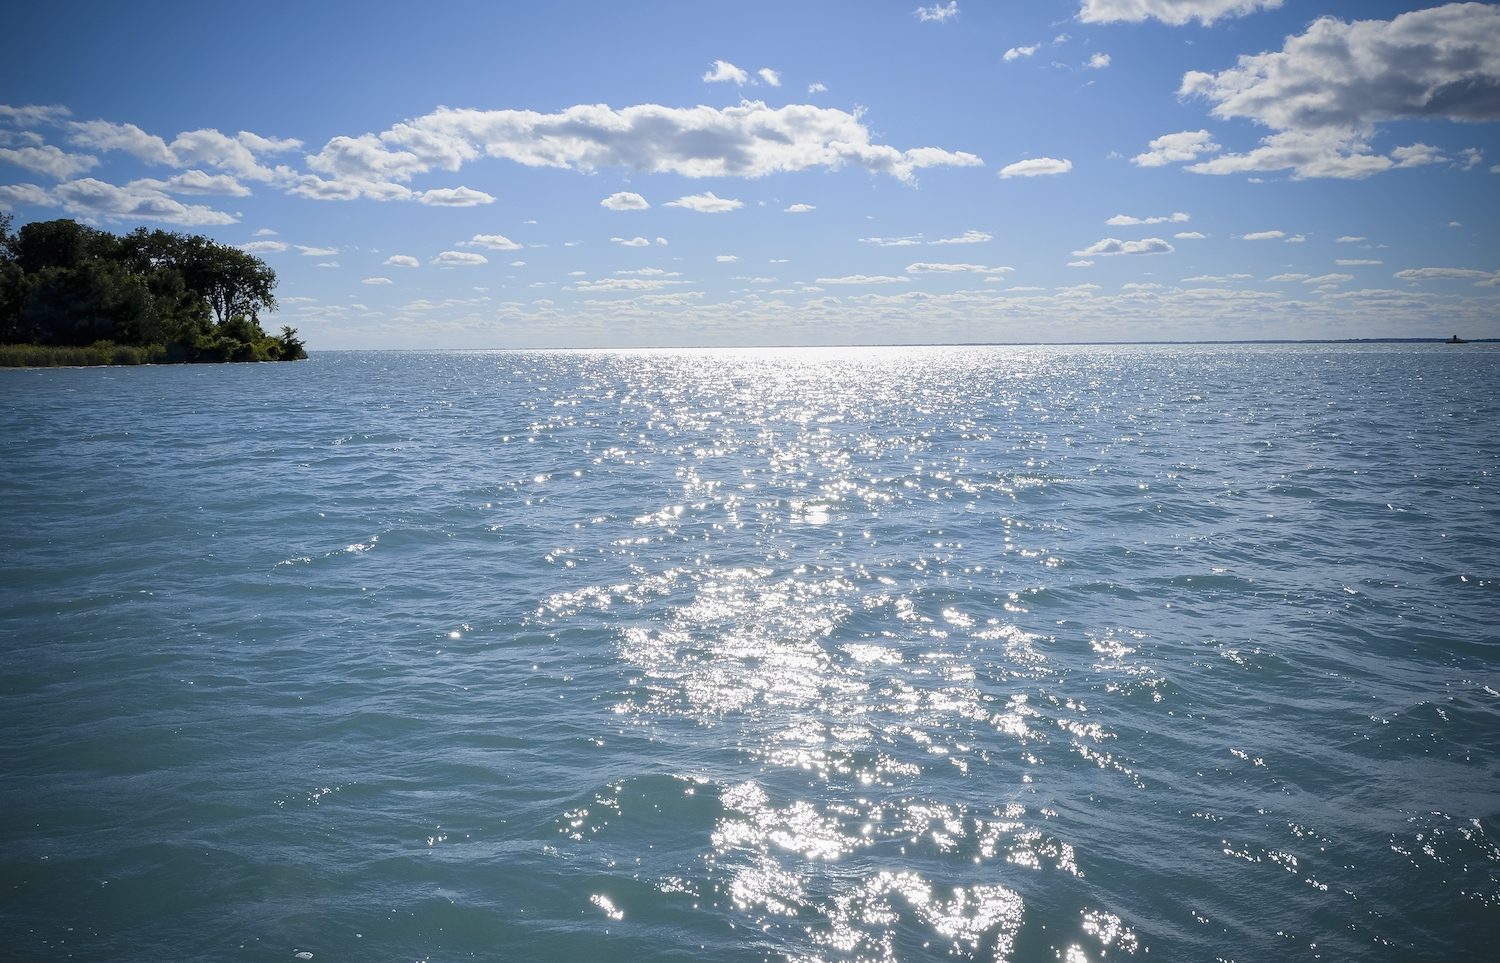 Amateur Fishing Championship event at Lake St. Clair showcases MI conservation efforts